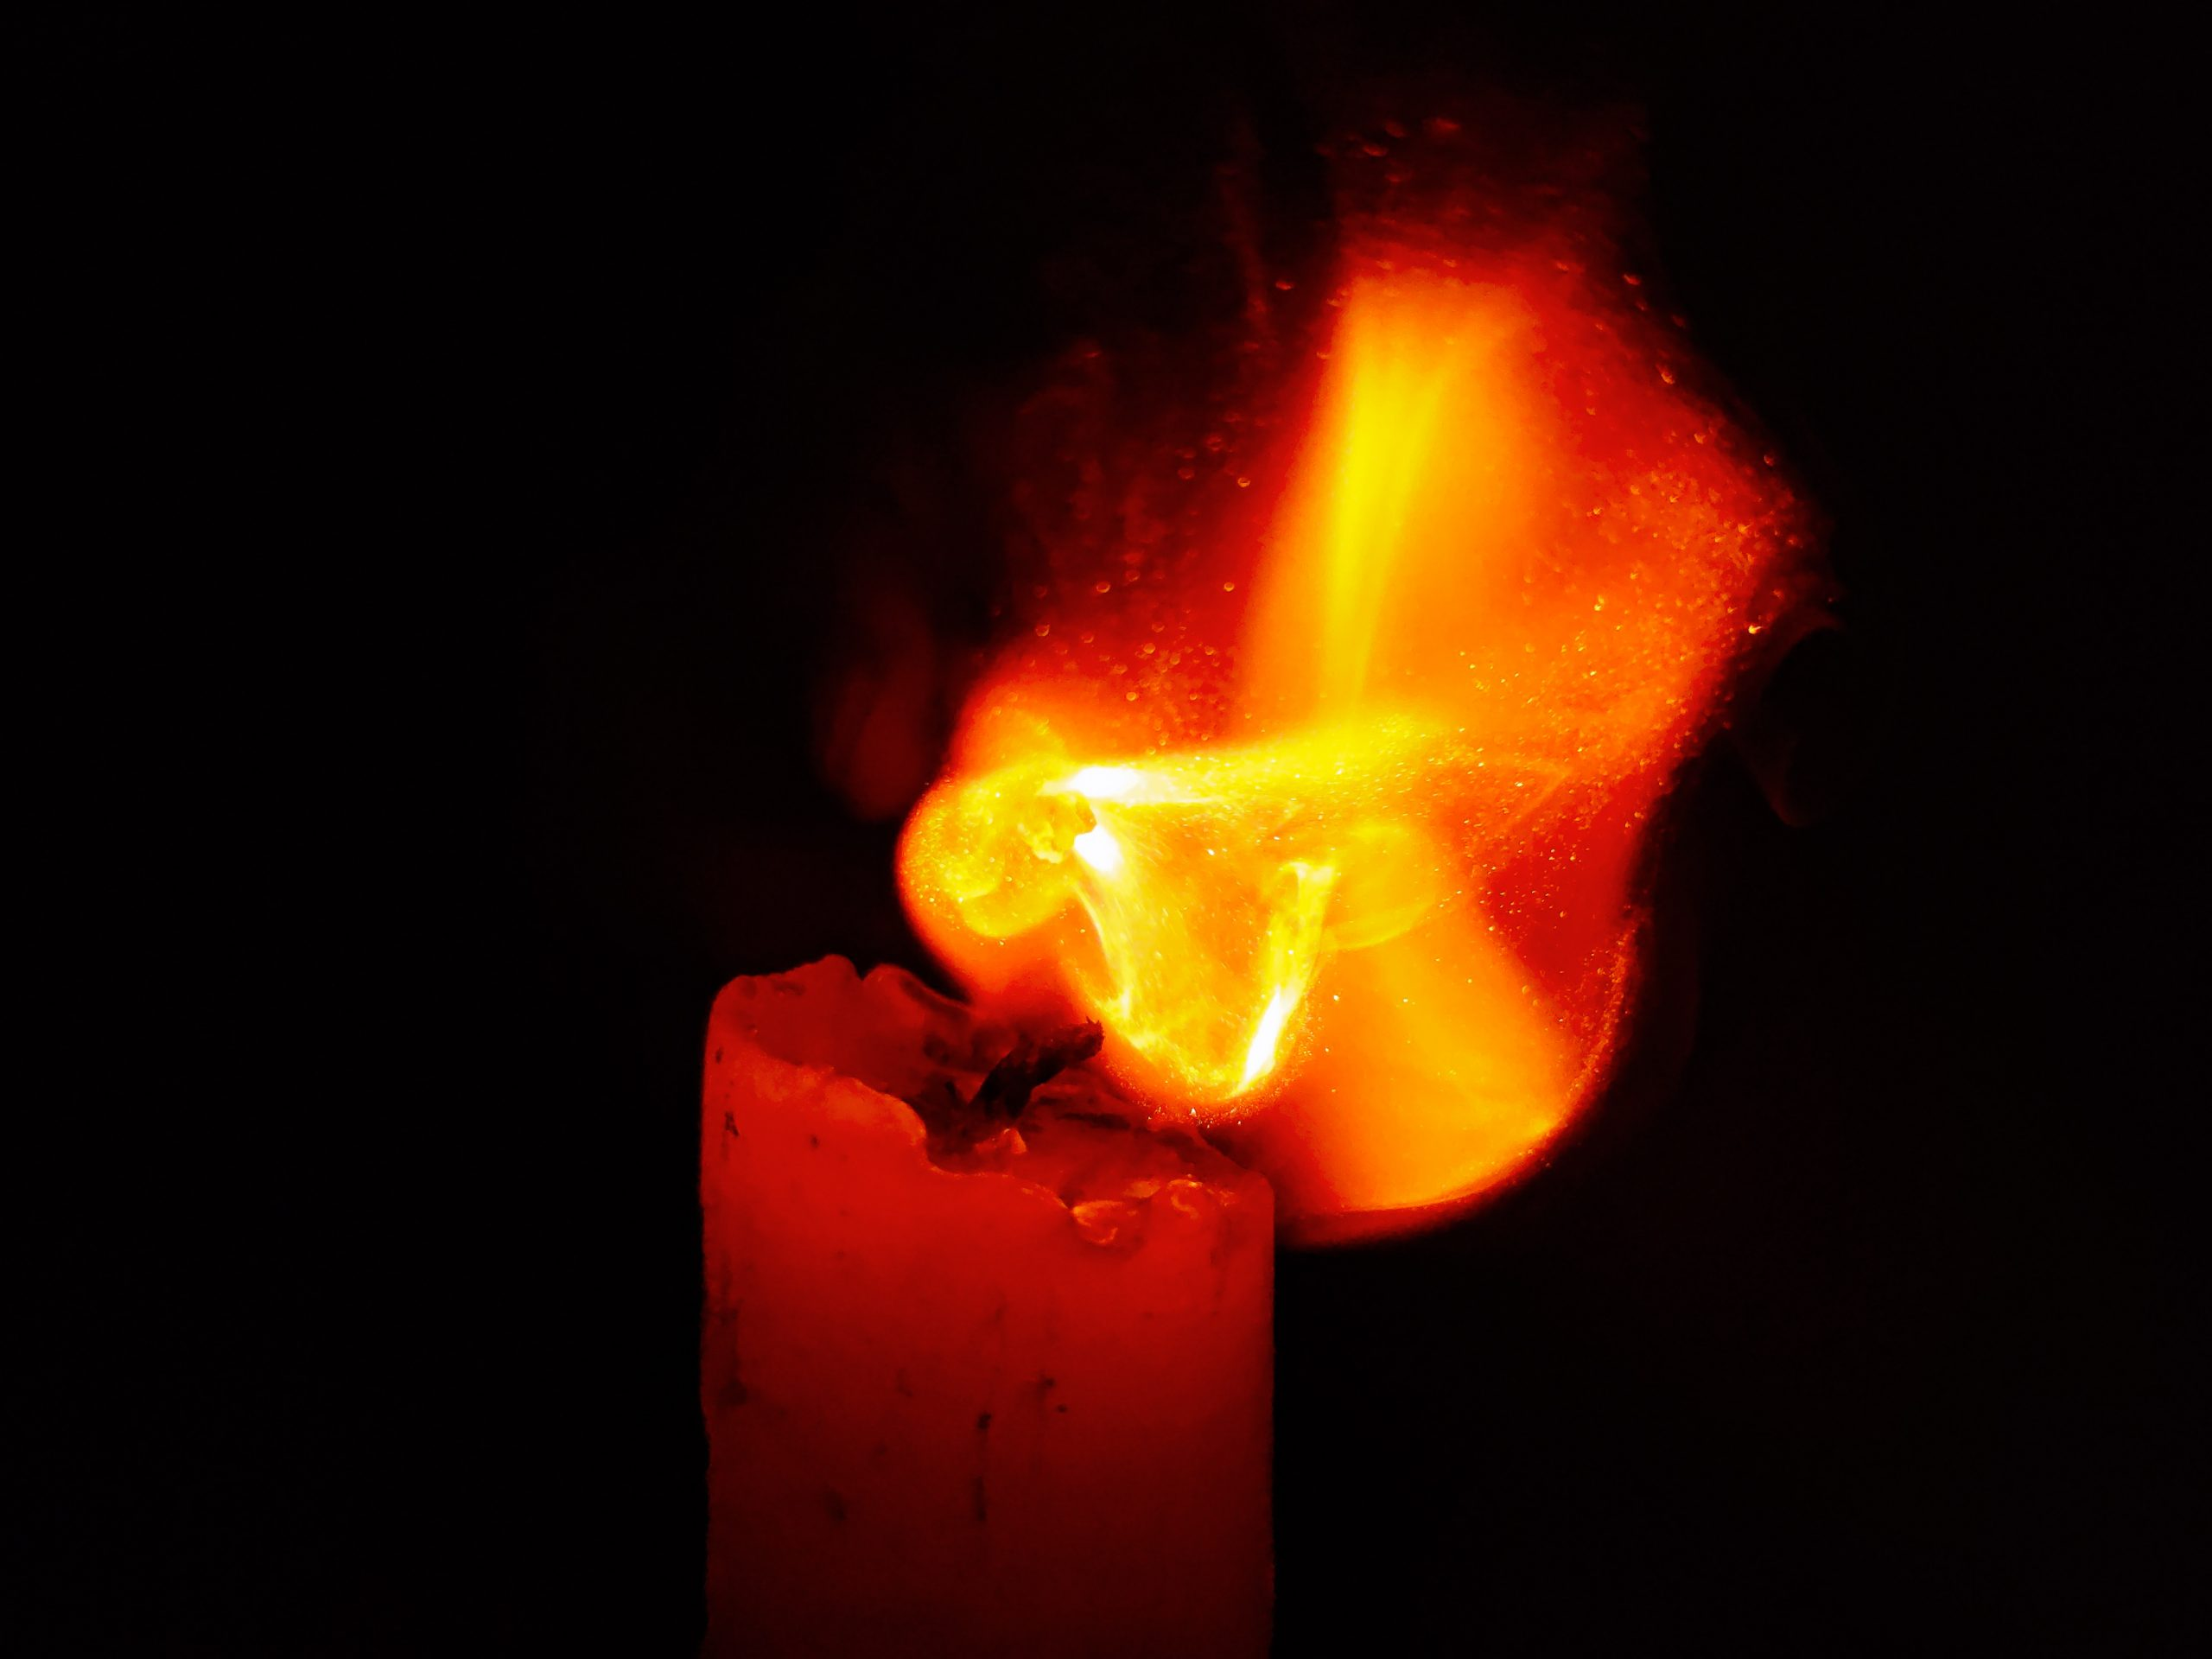 Candle Flame on Focus